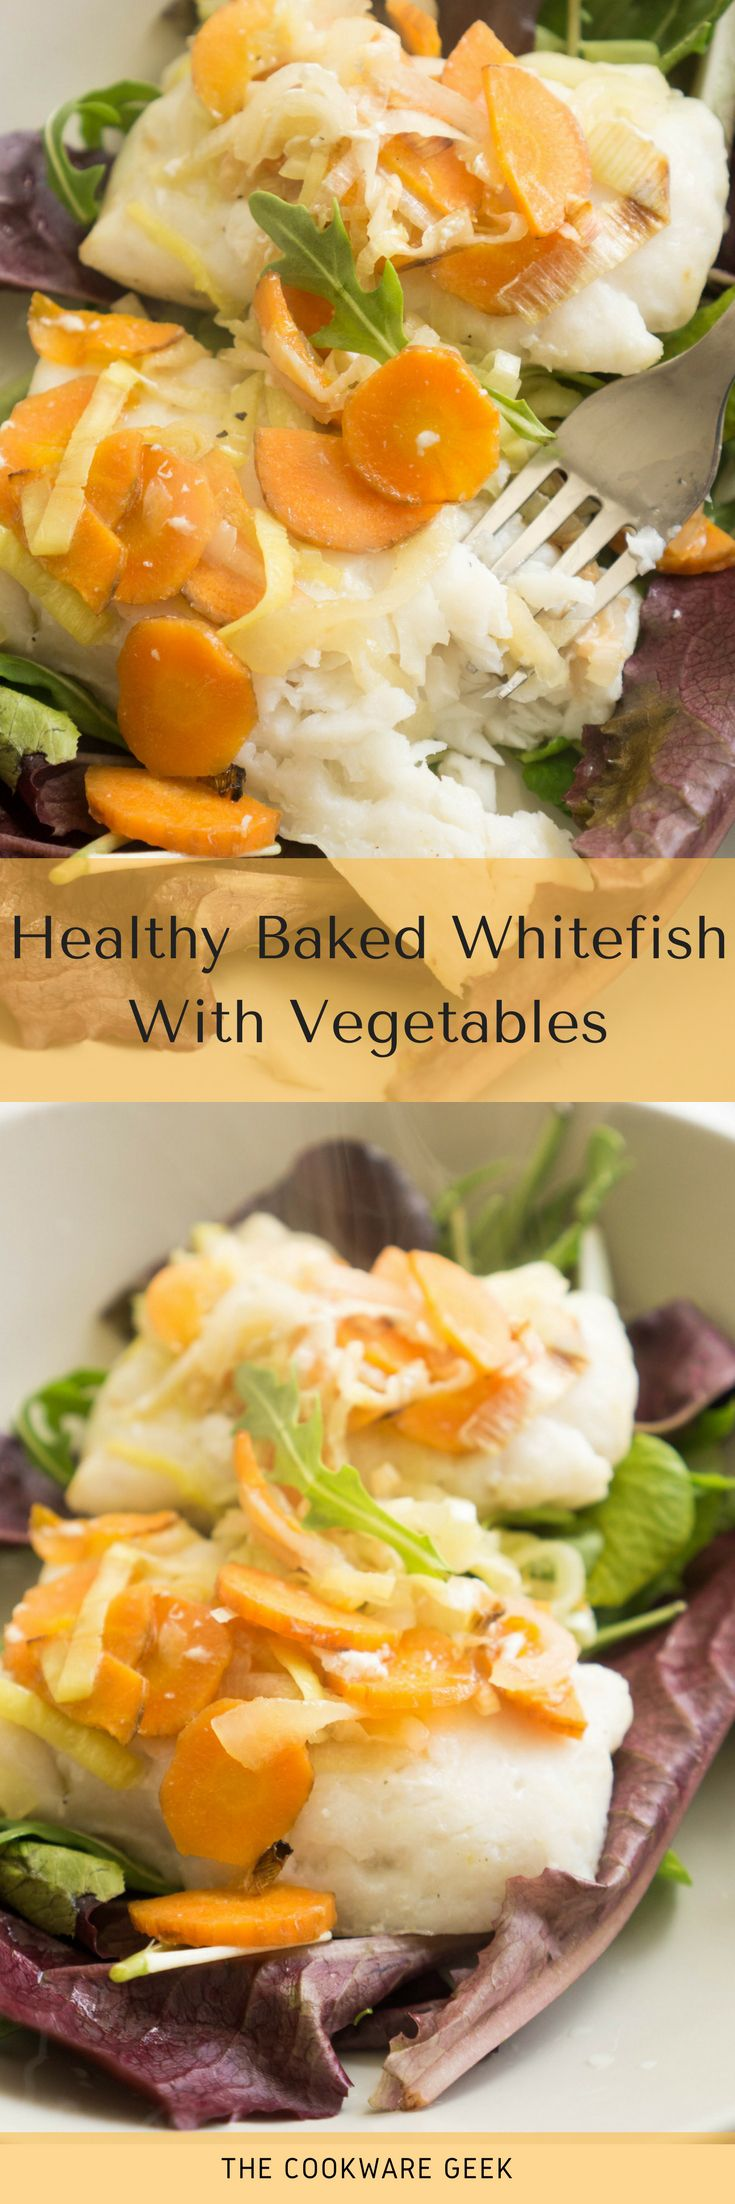 Healthy Baked Whitefish With Vegetables | The Cookware Geek